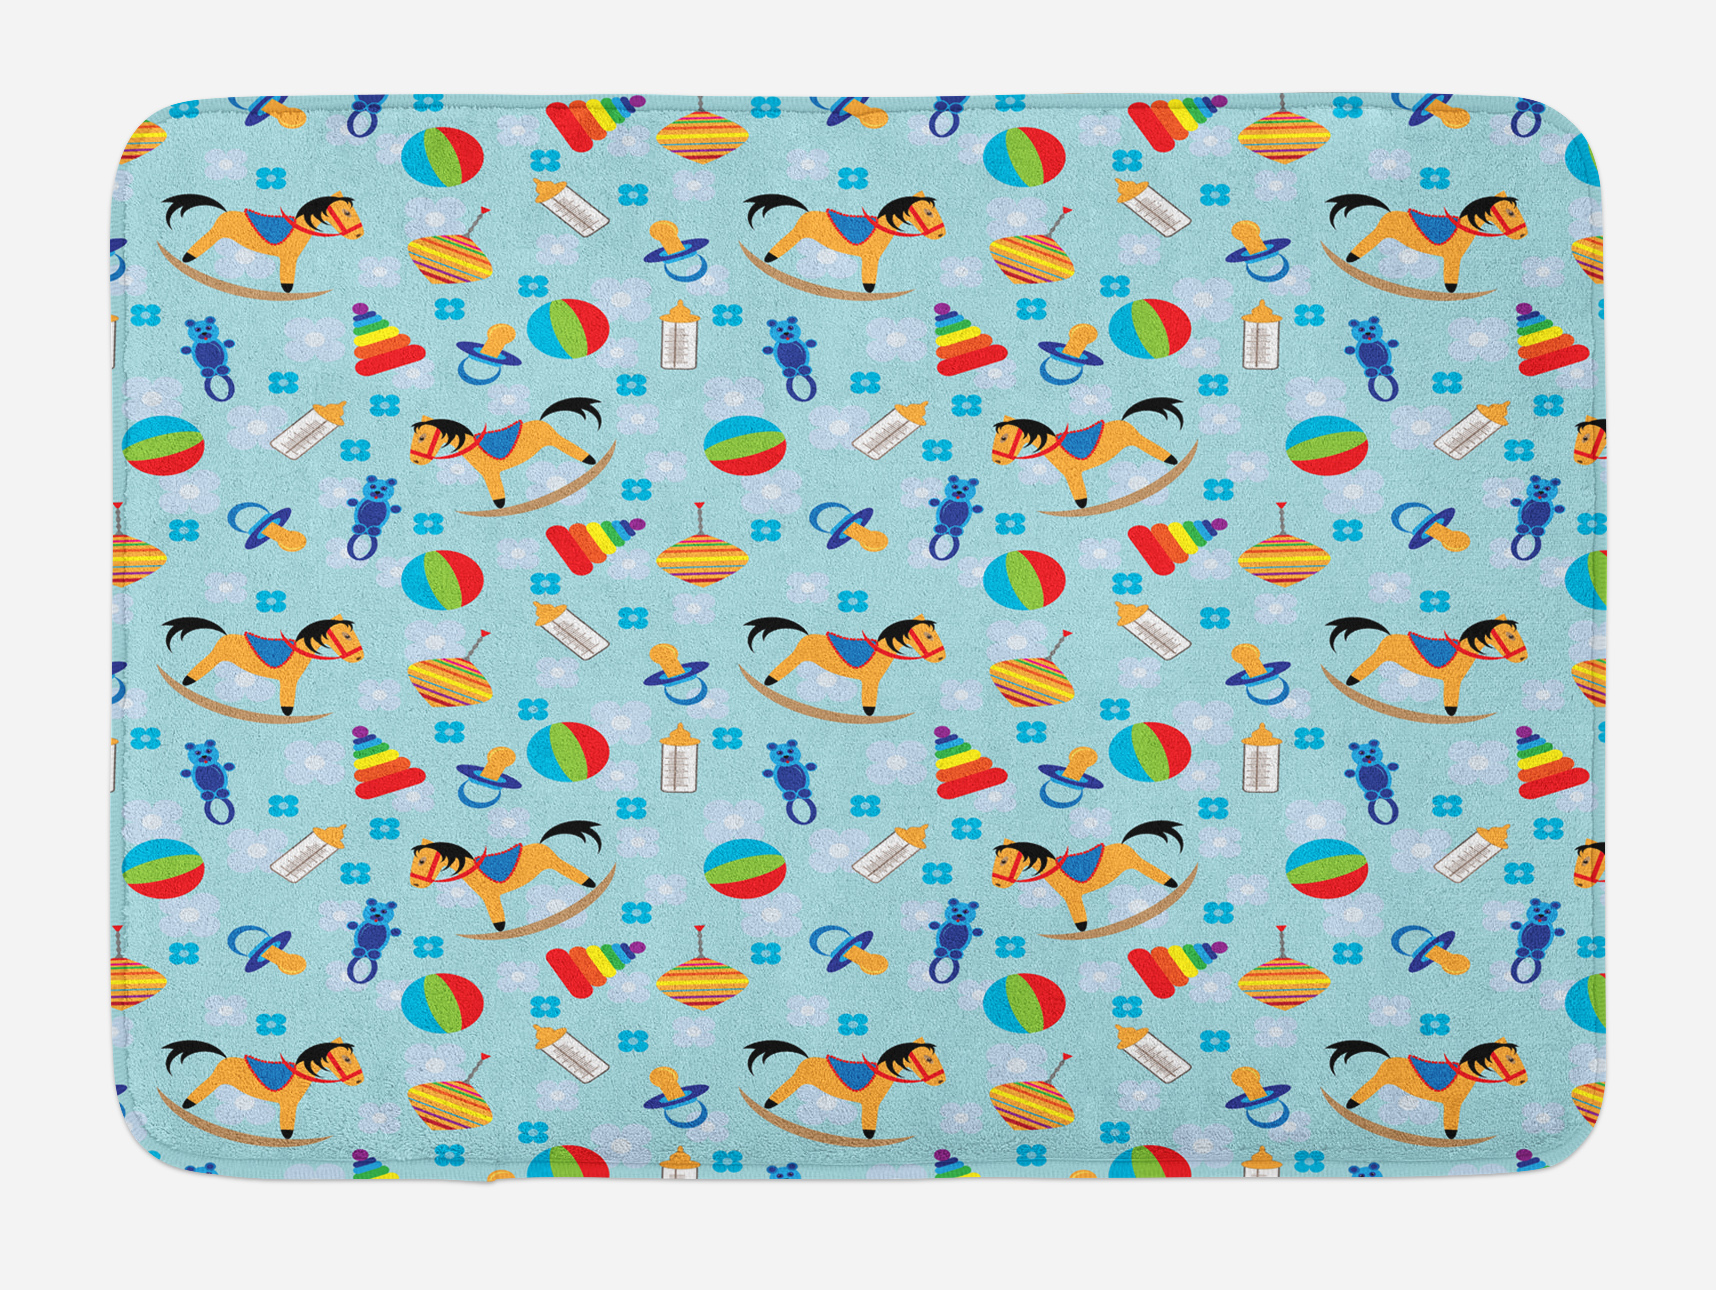 Kids Bath Mat, Colorful Joyous Composition with Different Children`s Toy Figures in... by 3decor llc